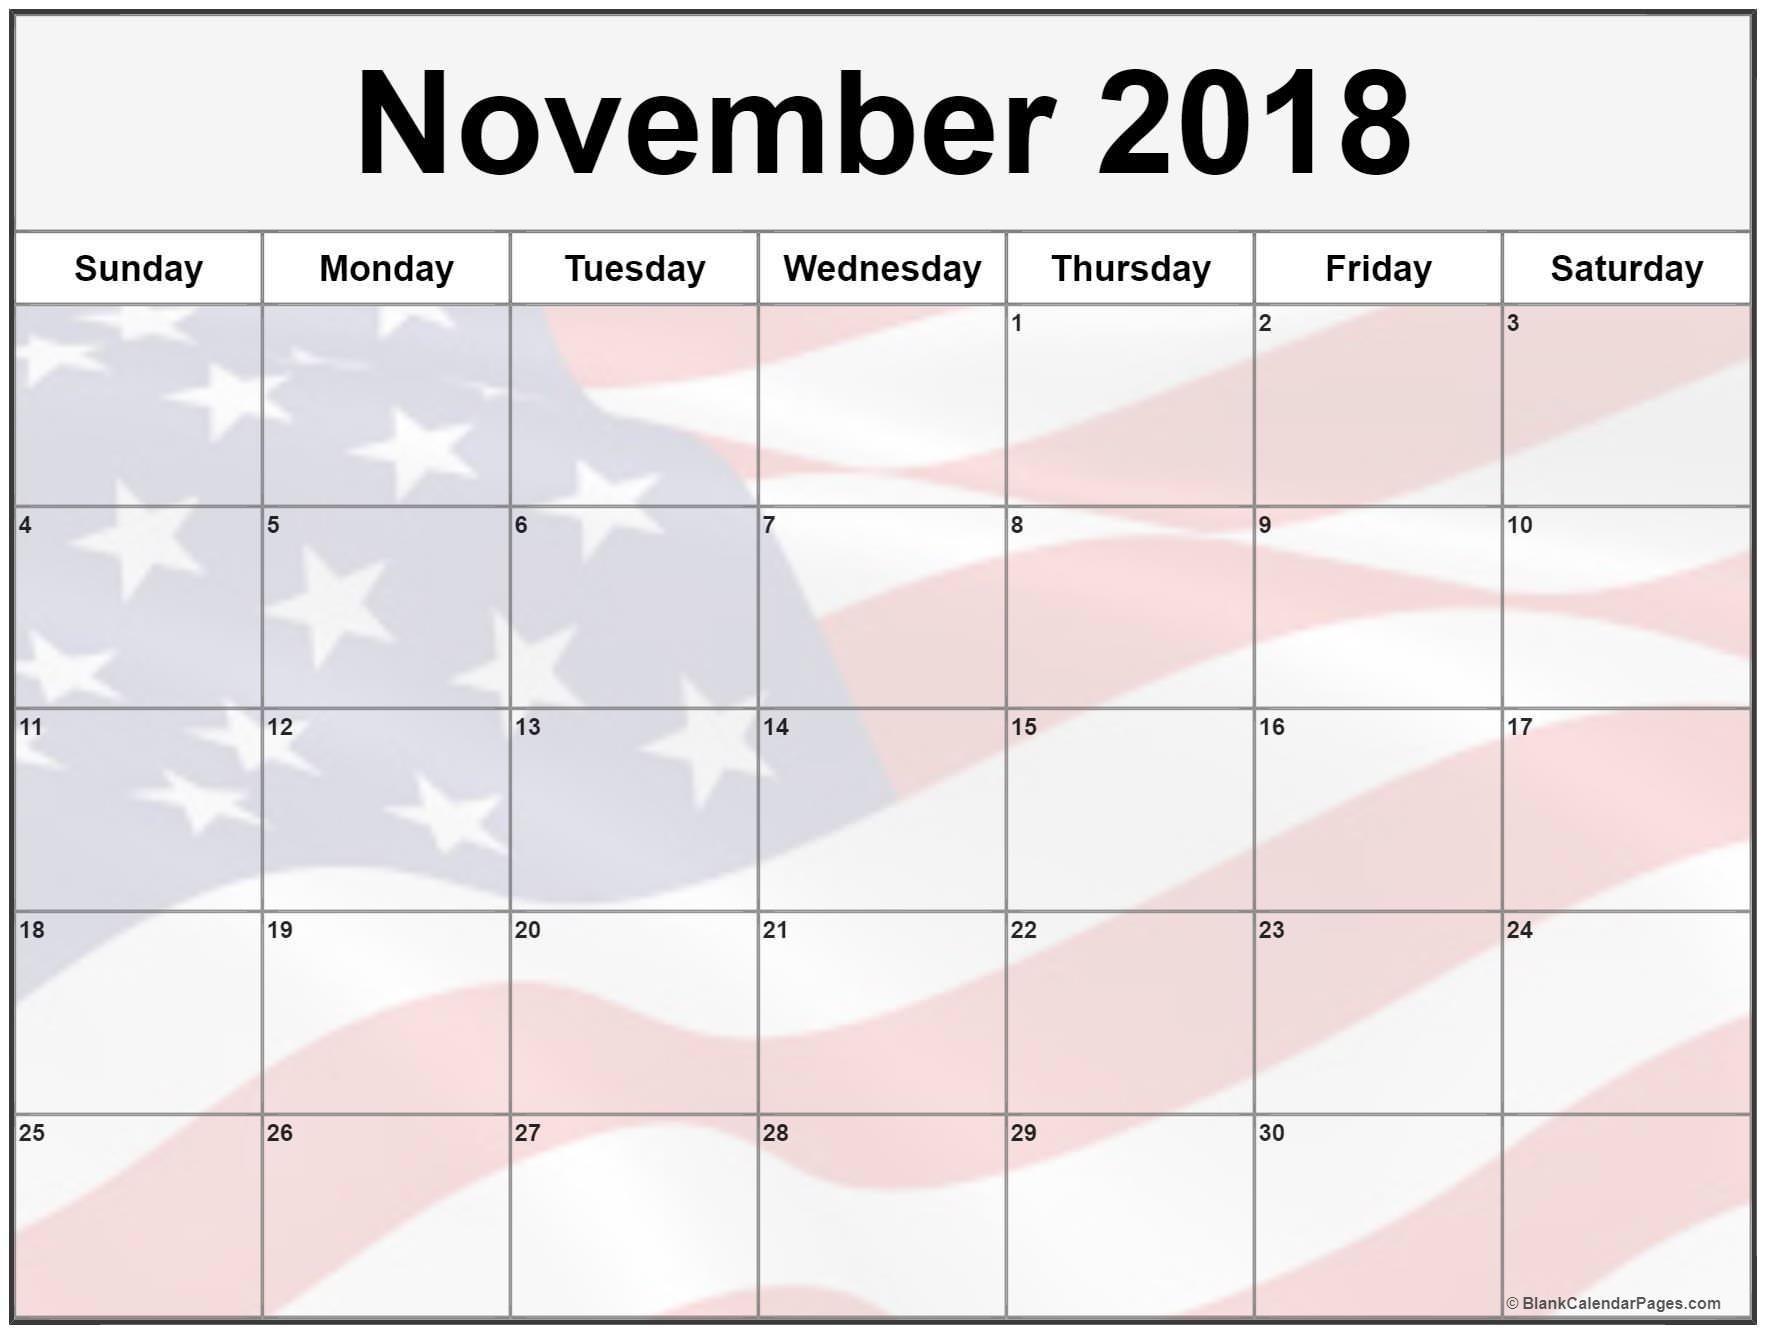 november 2018 calendar 51 calendar templates of 2018 calendars::November 2018 Calendar USA